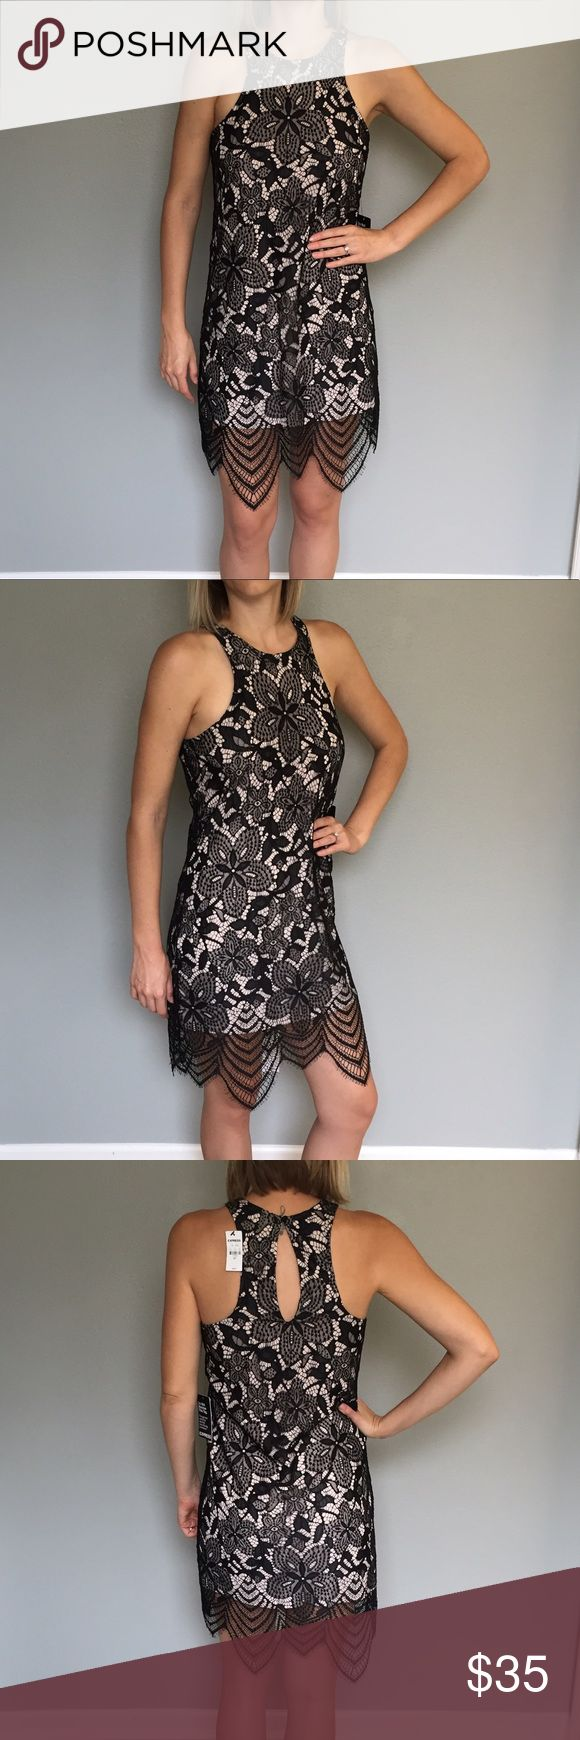 Gorgeous NWT little black lace dress This dress is subtly sexy with an edge! New with tags, never been worn black lace dress from express. Black lace overlays a nude slip layer. Super light and comfortable with a fun, almost-racer back cut. Shell: 100% nylon. Lining: 100% polyester. Express Dresses Mini